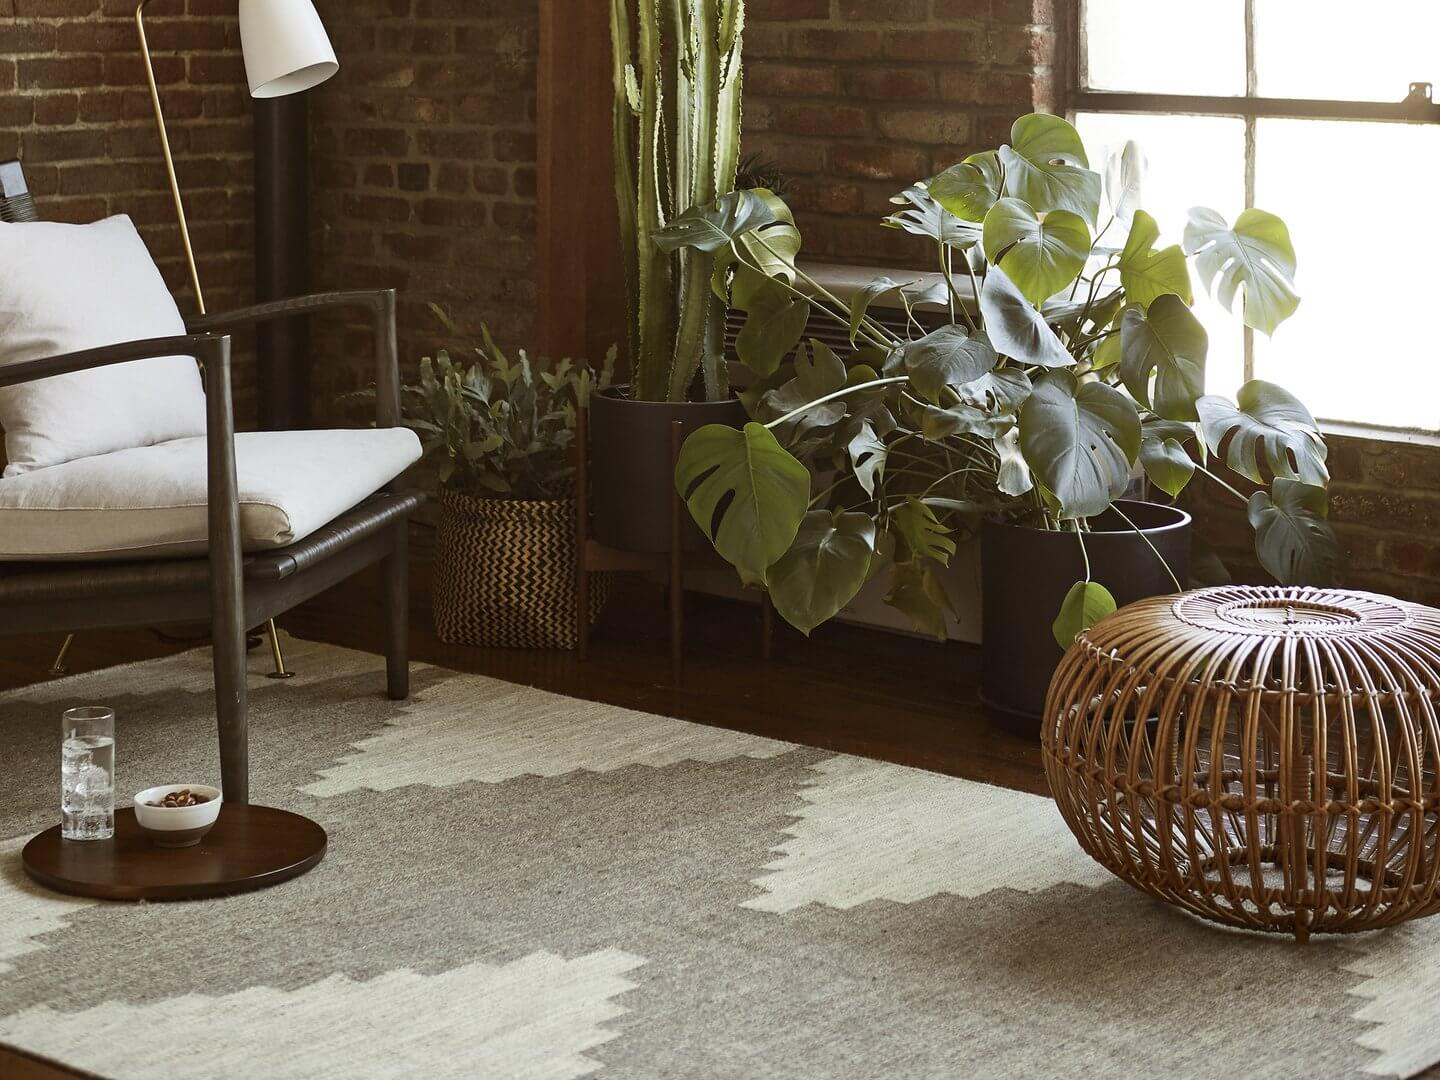 Deep Colors, Natural Textures, and Plenty of Plants